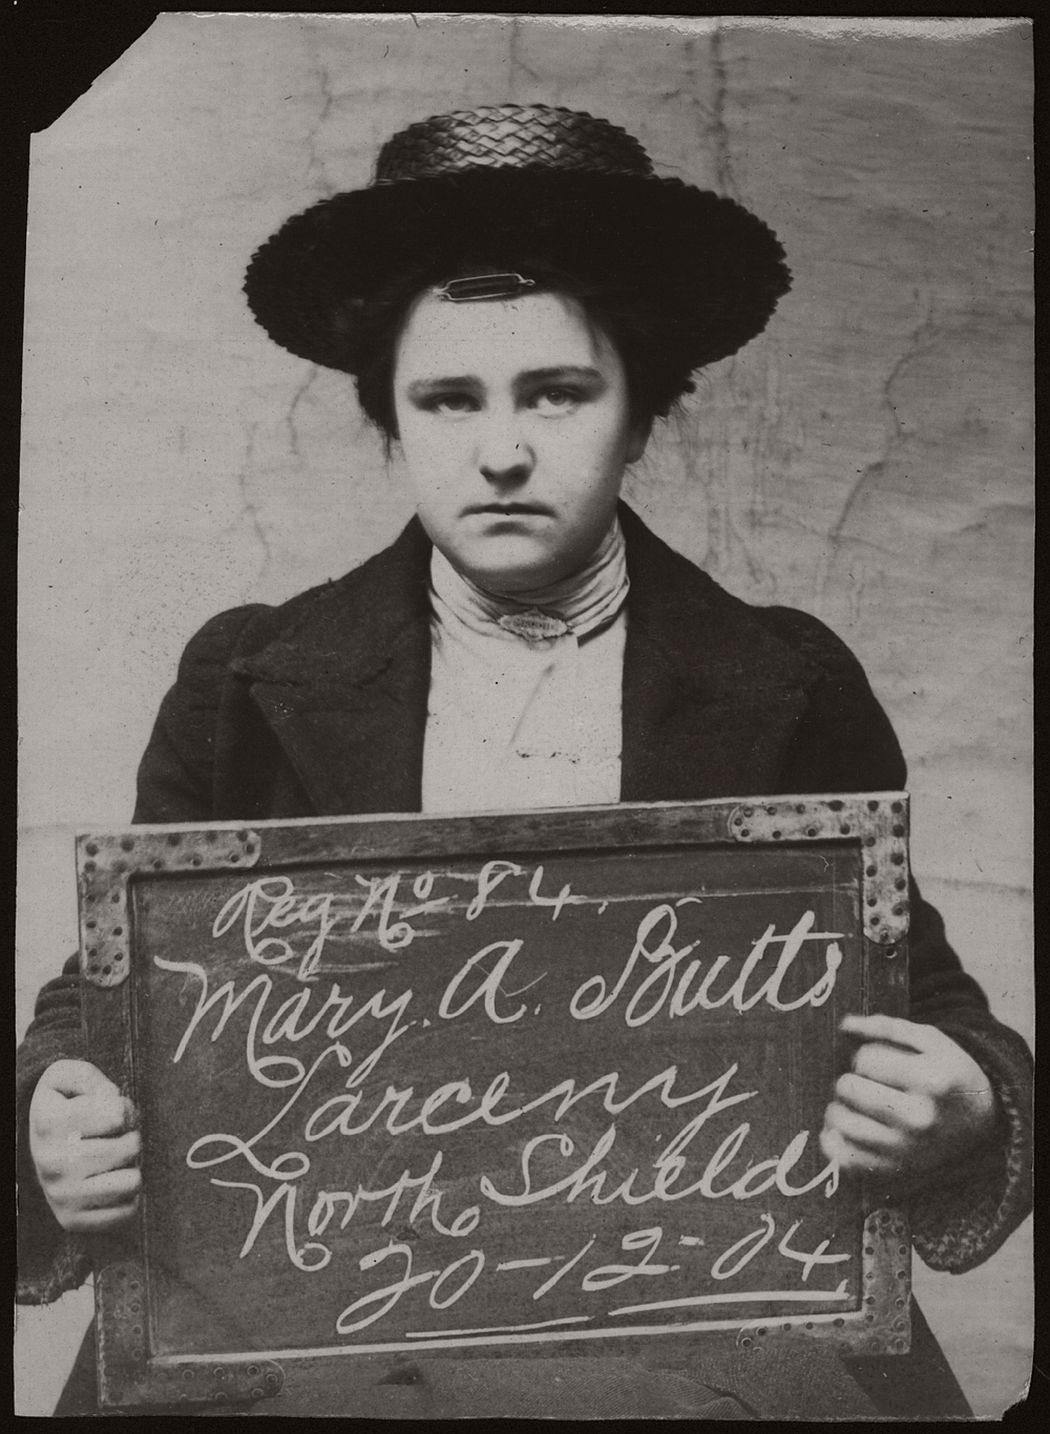 vintage-mug-shot-of-women-criminals-from-north-shields-1903-1905-14